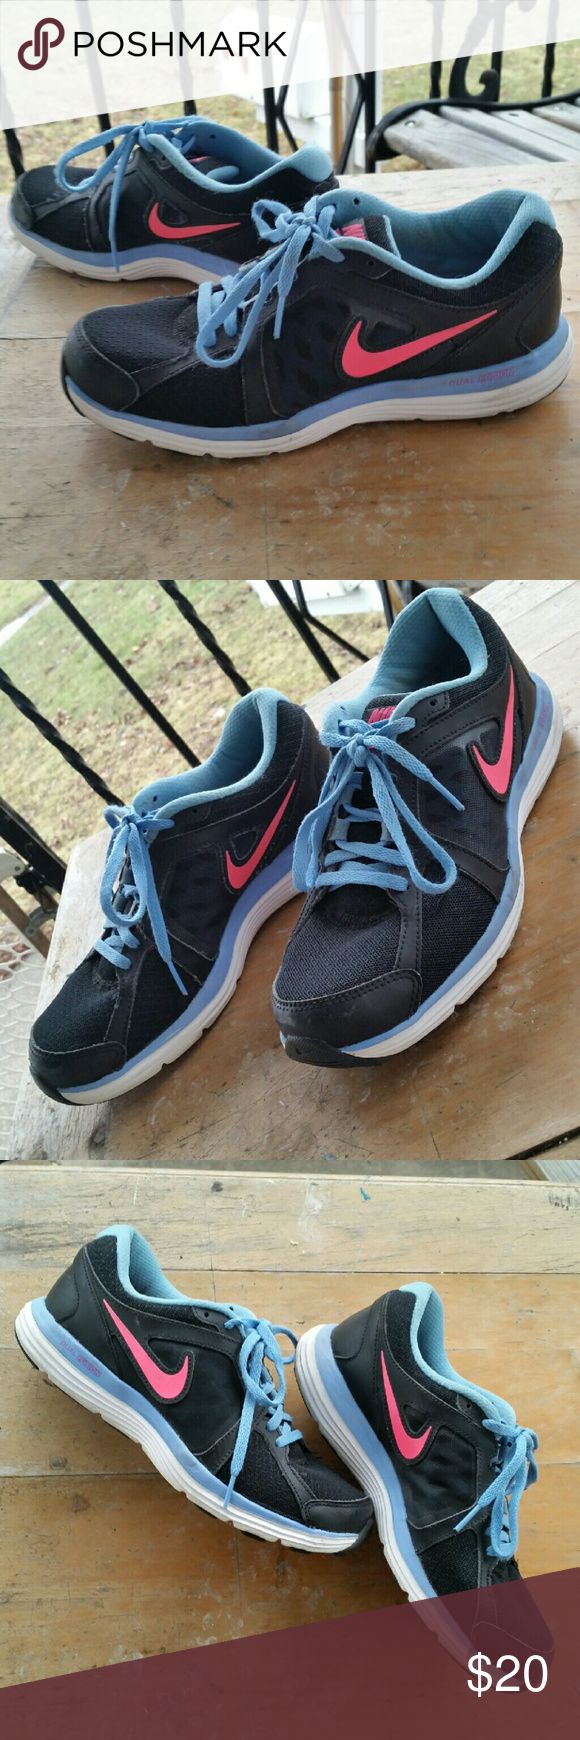 Nike Dual Fusion ST3 Sneakers Nike Dual Fusion ST3 shoes.  Black with hot pink & blue accents.  Cute and comfortable for working out & running!  In great condition, please zoom in and note minor scuffs and other normal signs of use. US Women's Size 8 Nike Shoes Athletic Shoes